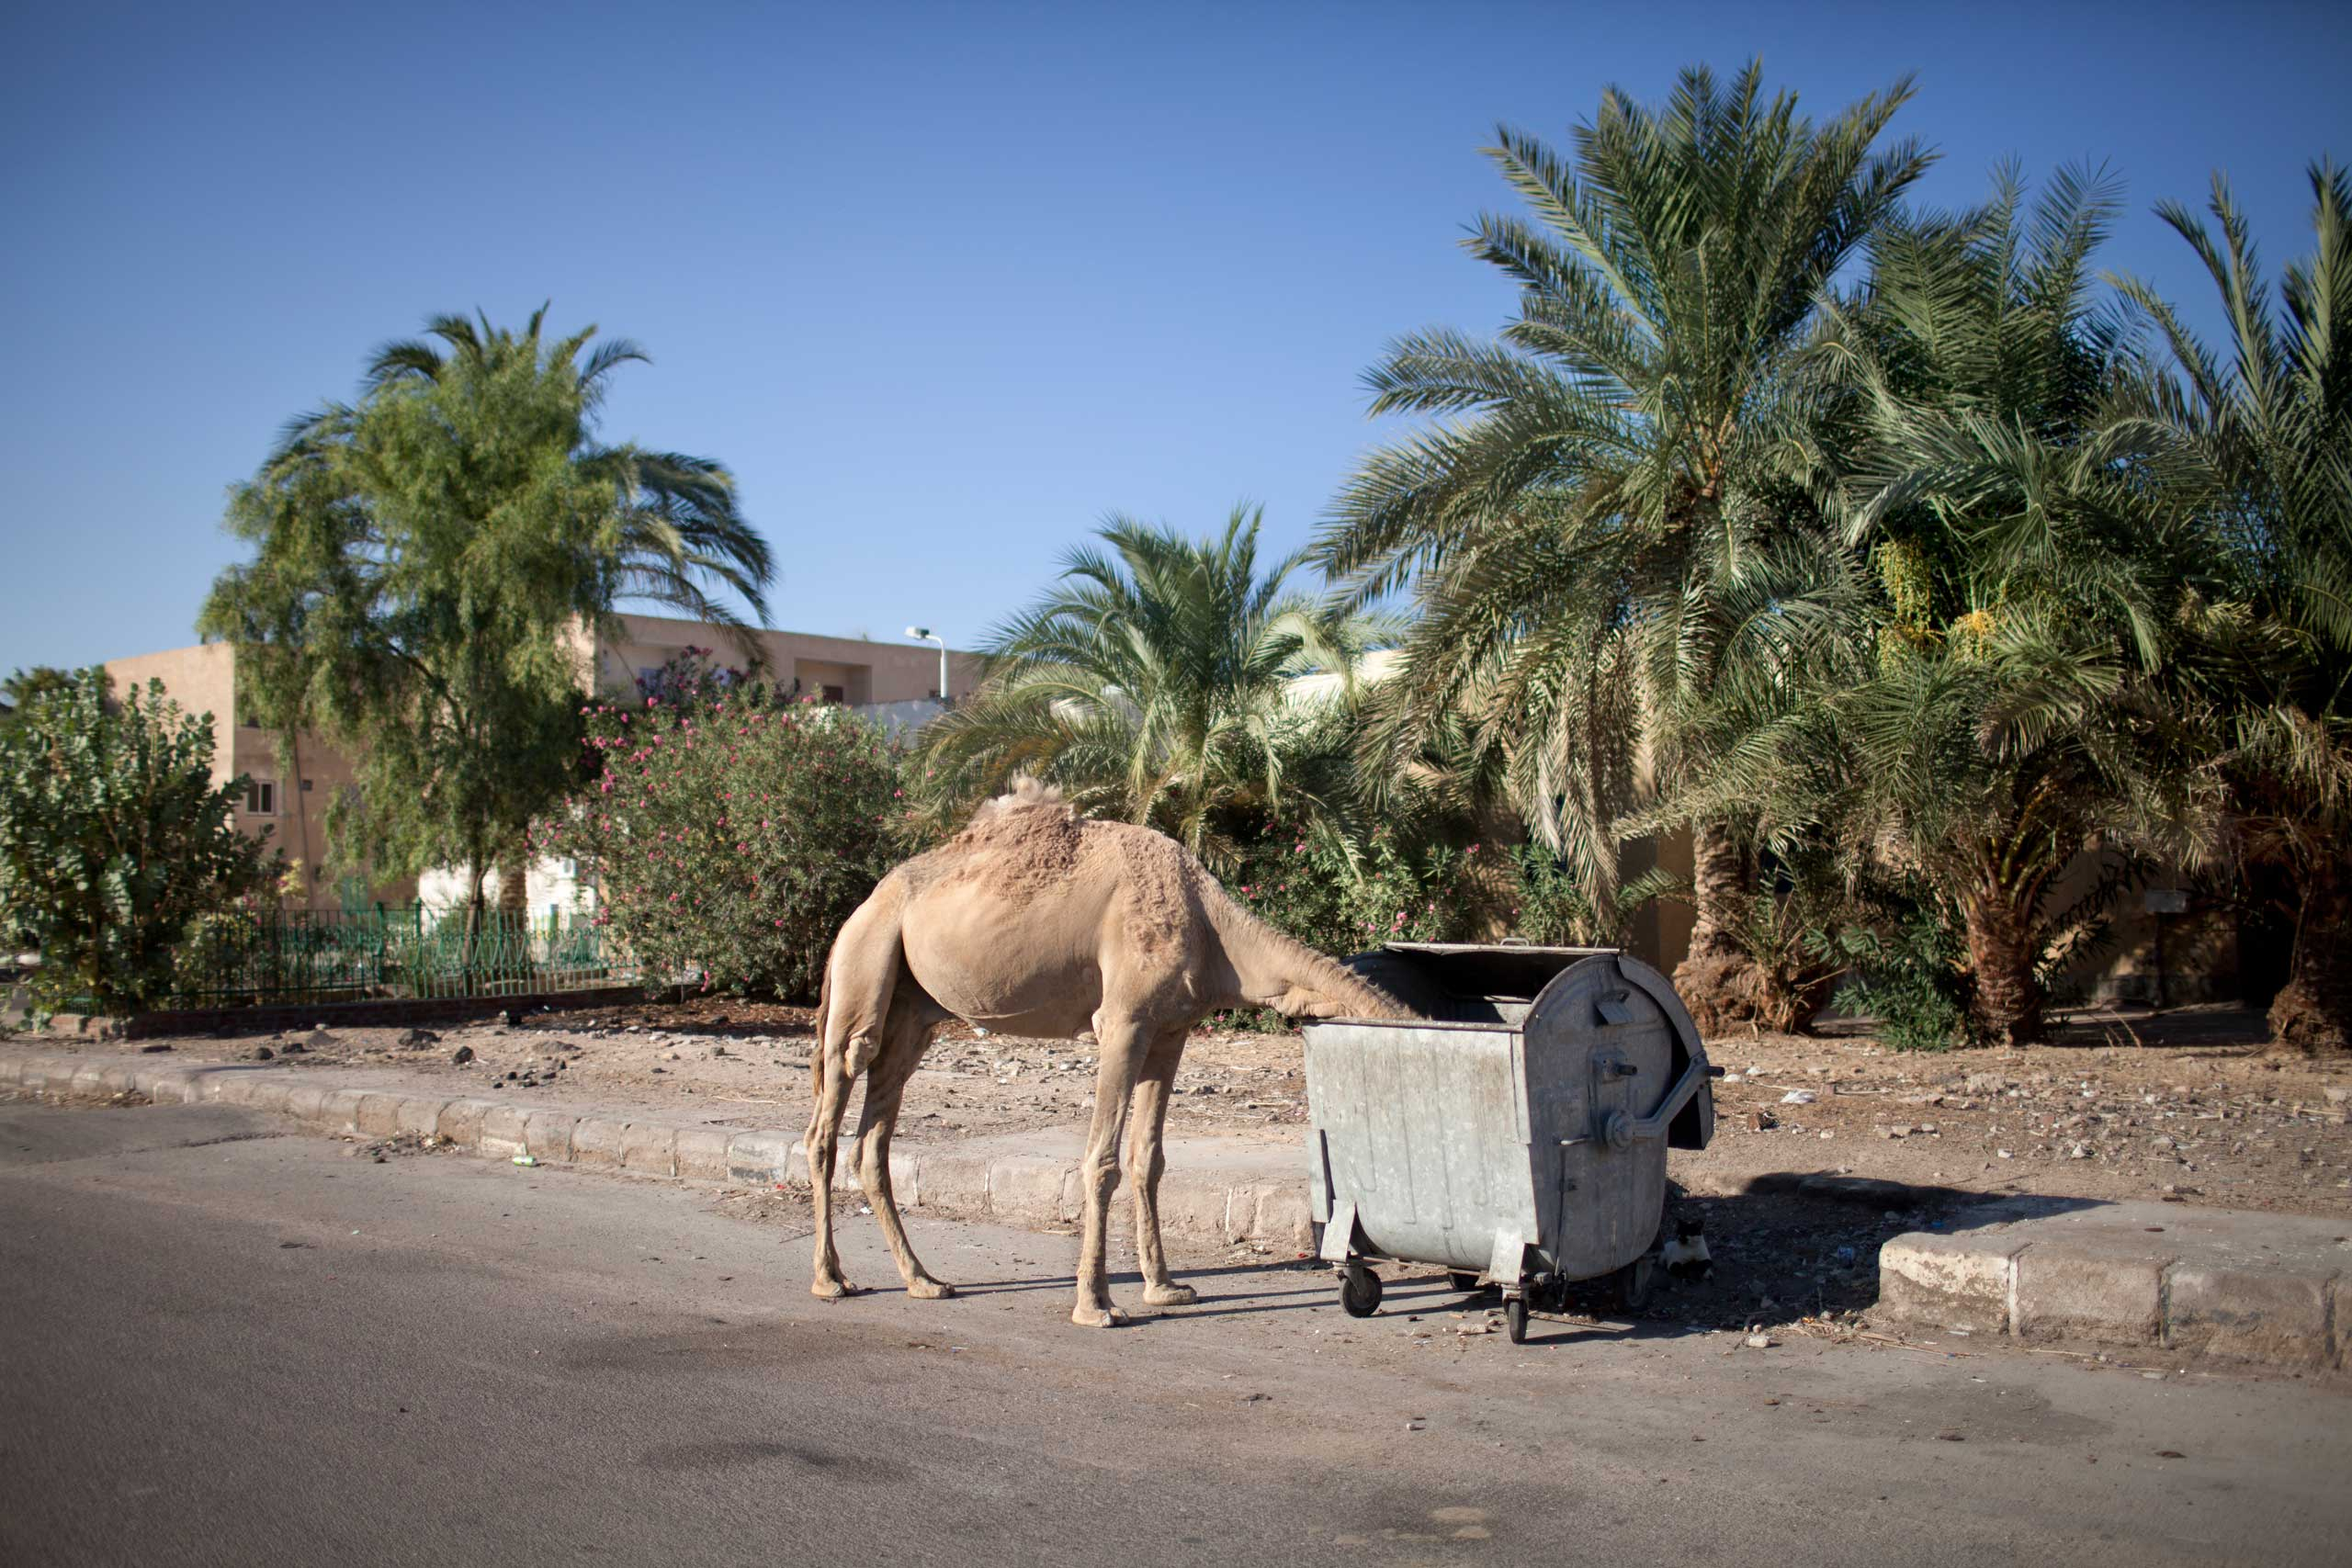 A stray camel, in Nuweiba, Sinai, June 2014.